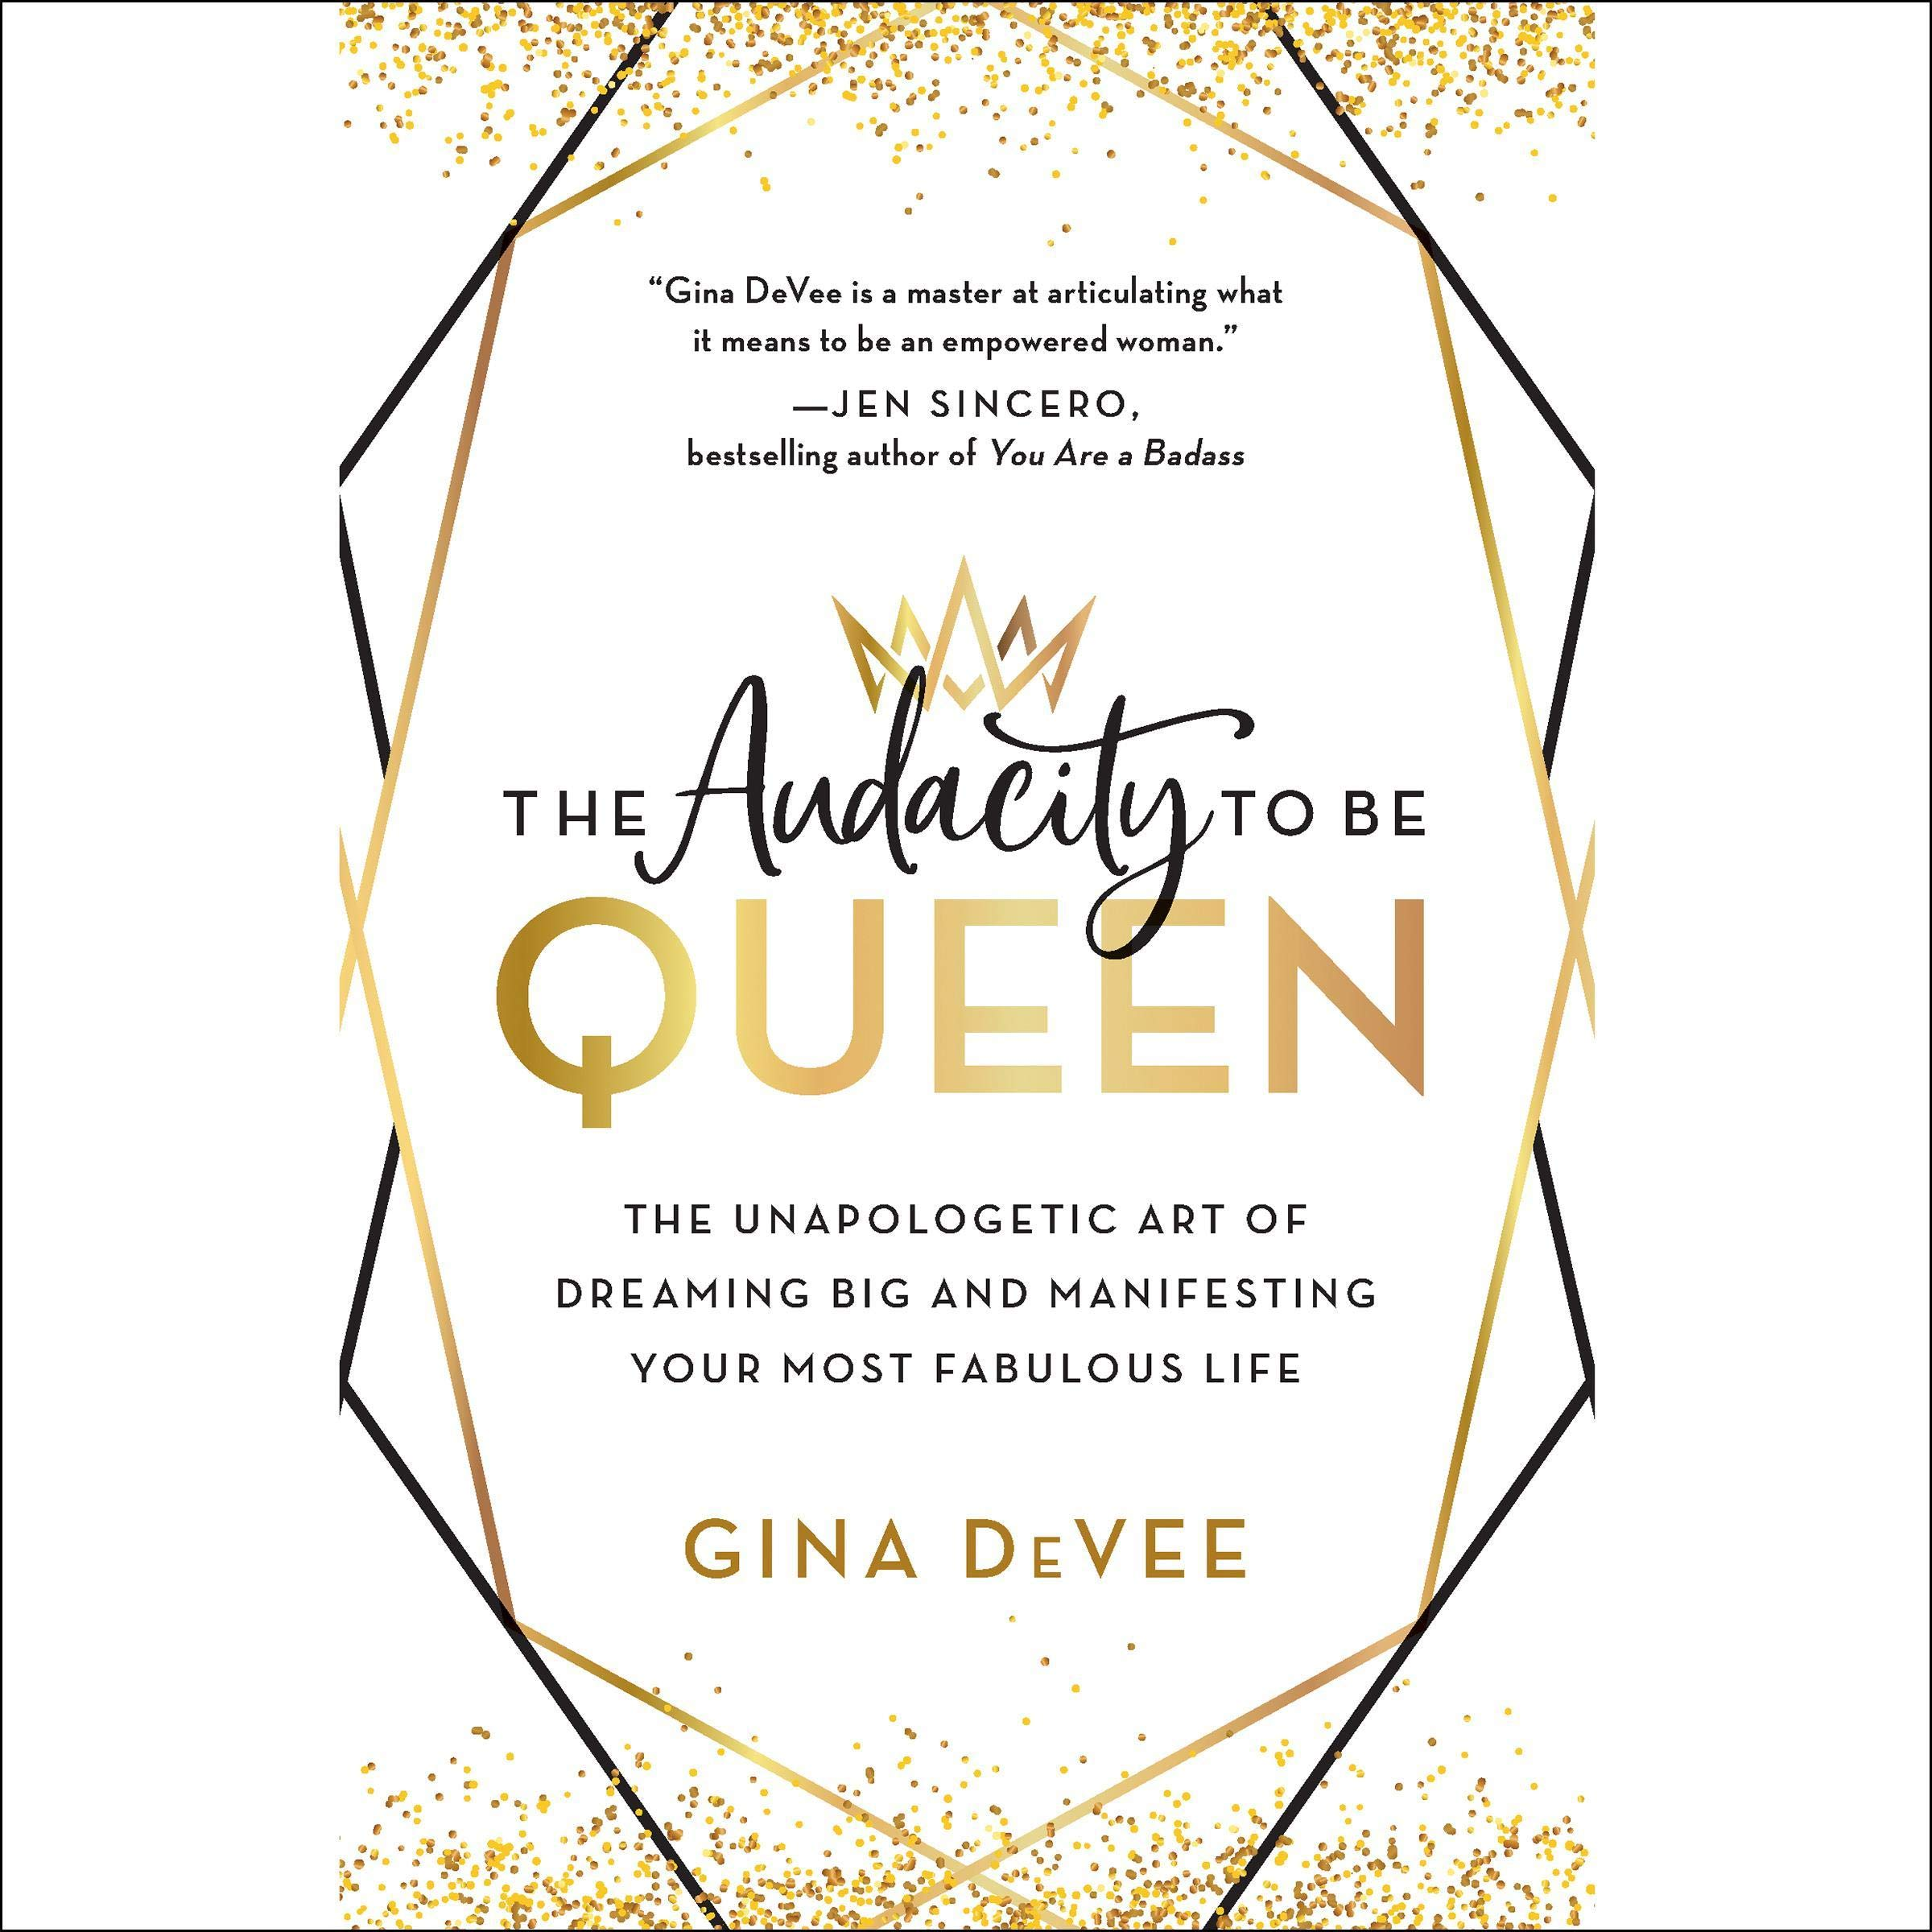 Image OfThe Audacity To Be Queen: The Unapologetic Art Of Dreaming Big And Manifesting Your Most Fabulous Life